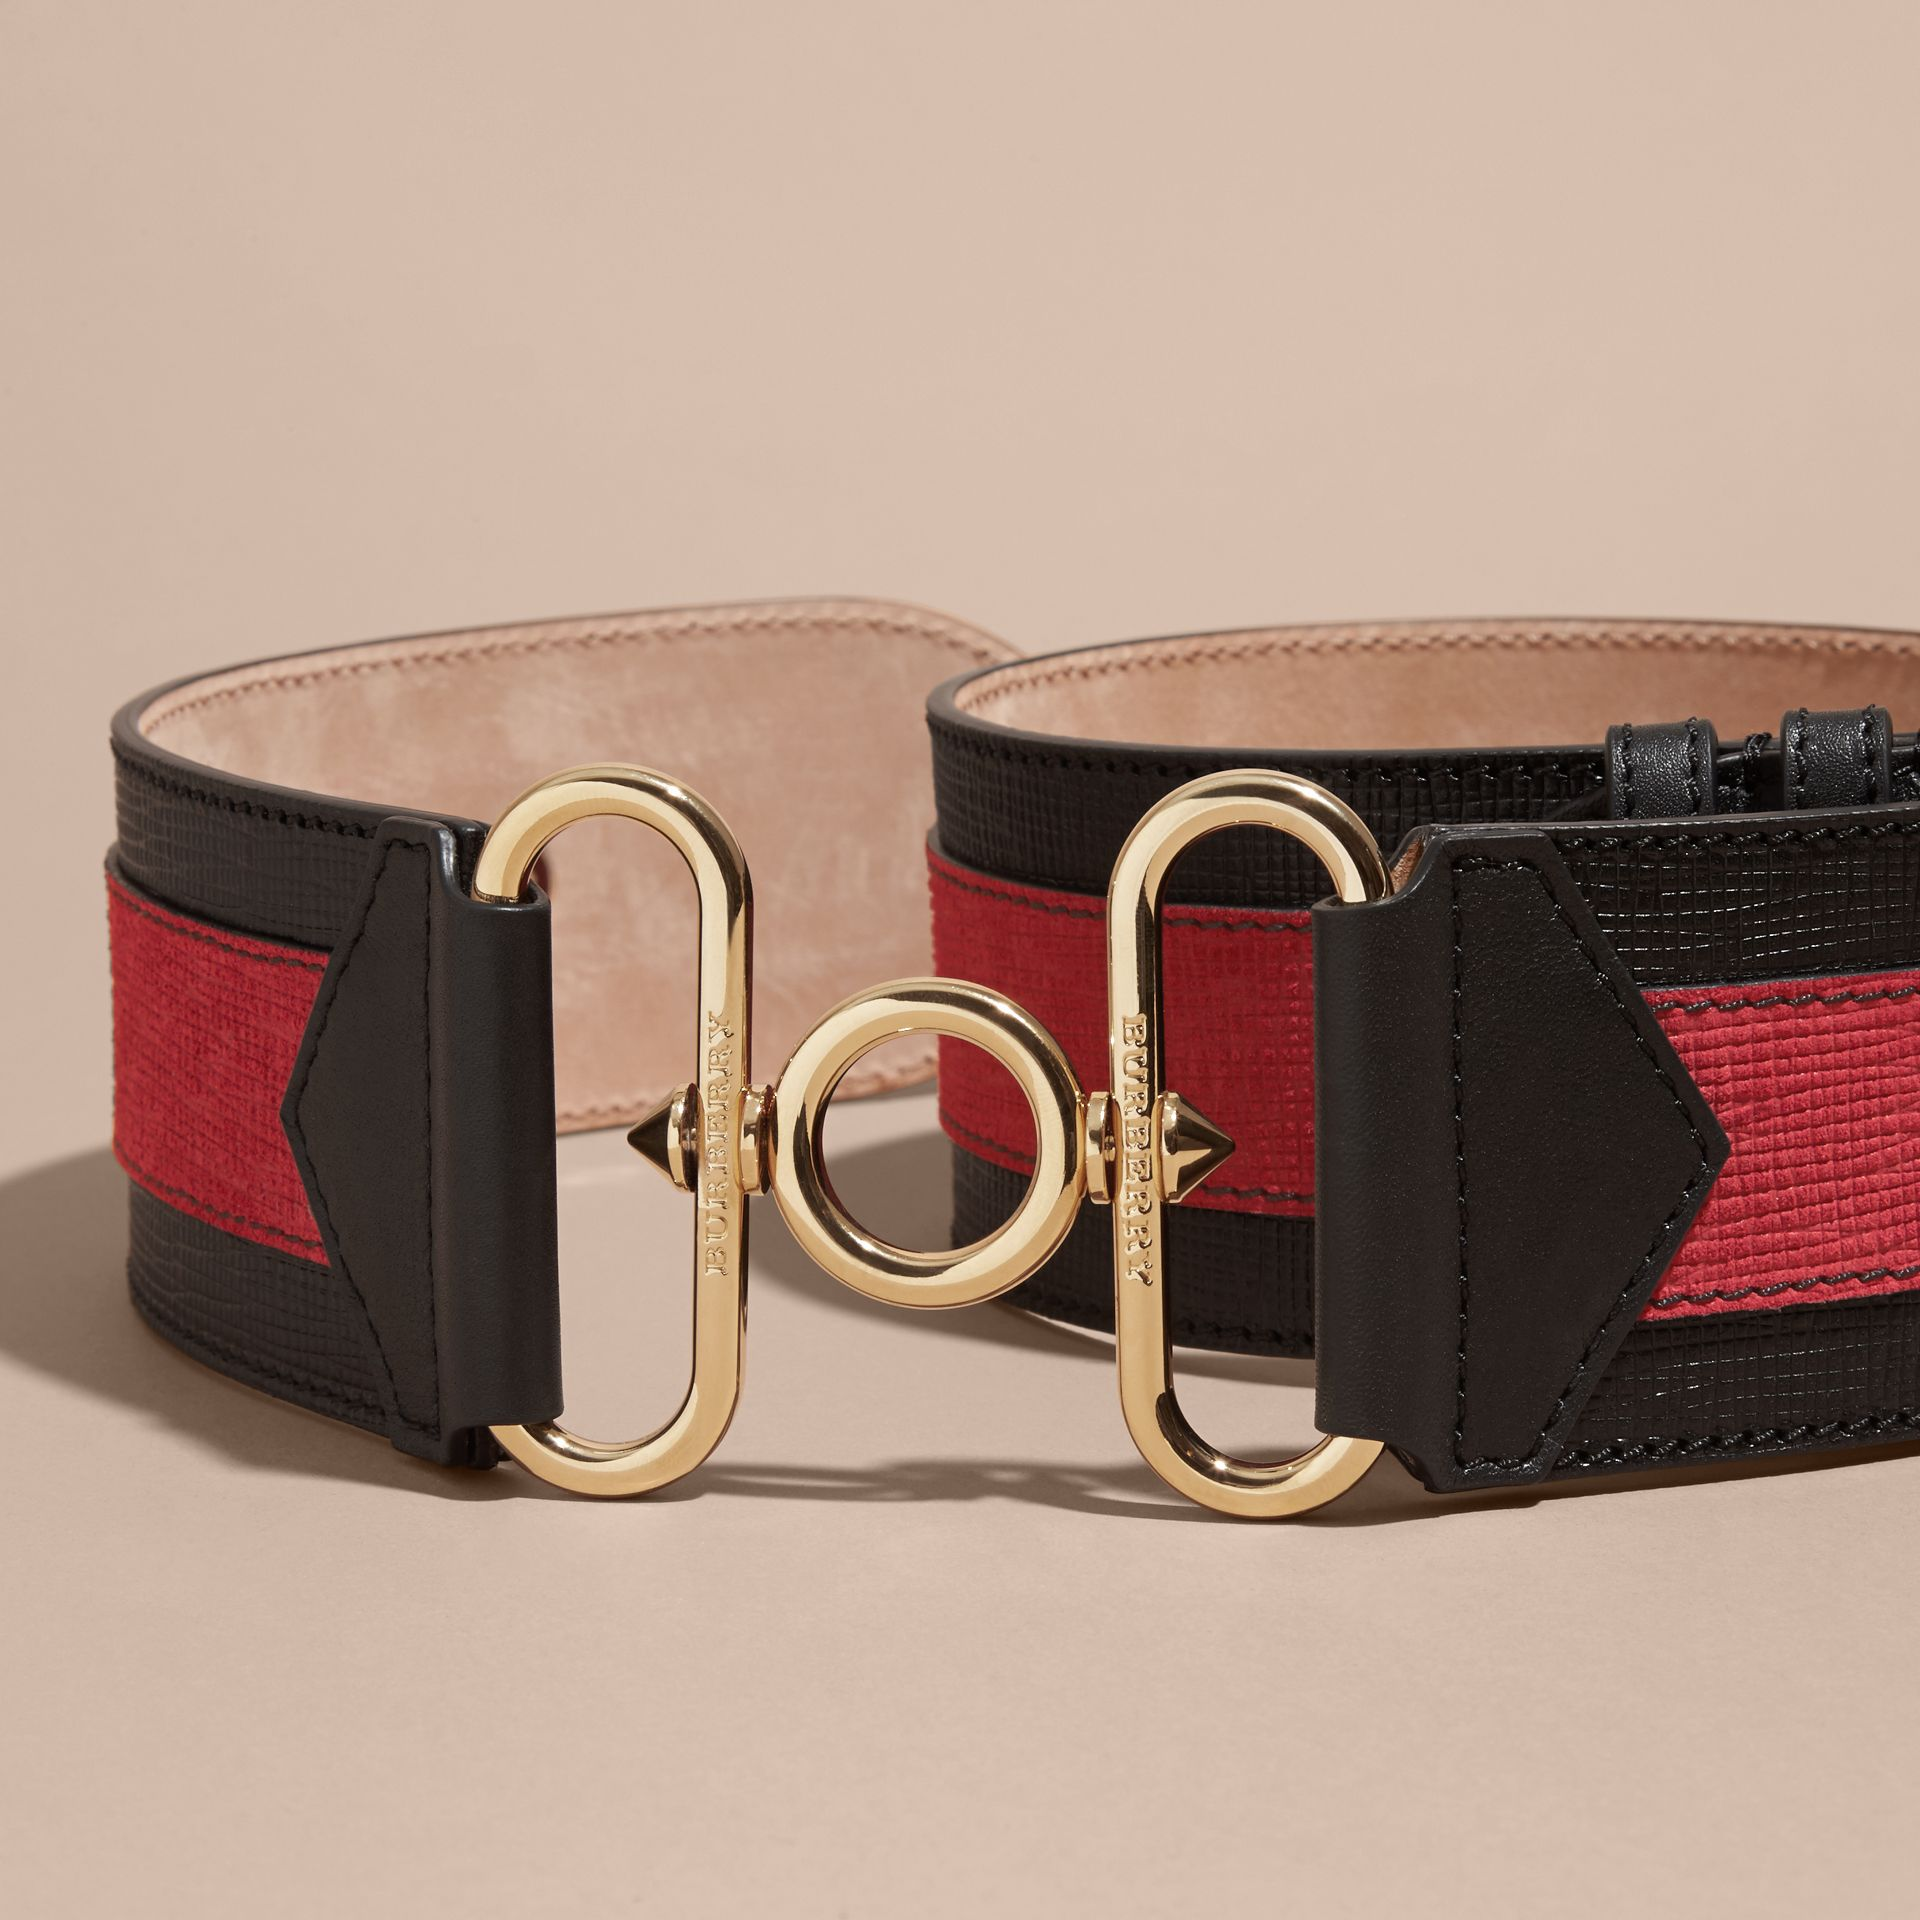 Black / parade red Embellished and Appliquéd Textured Leather Military Belt - gallery image 3